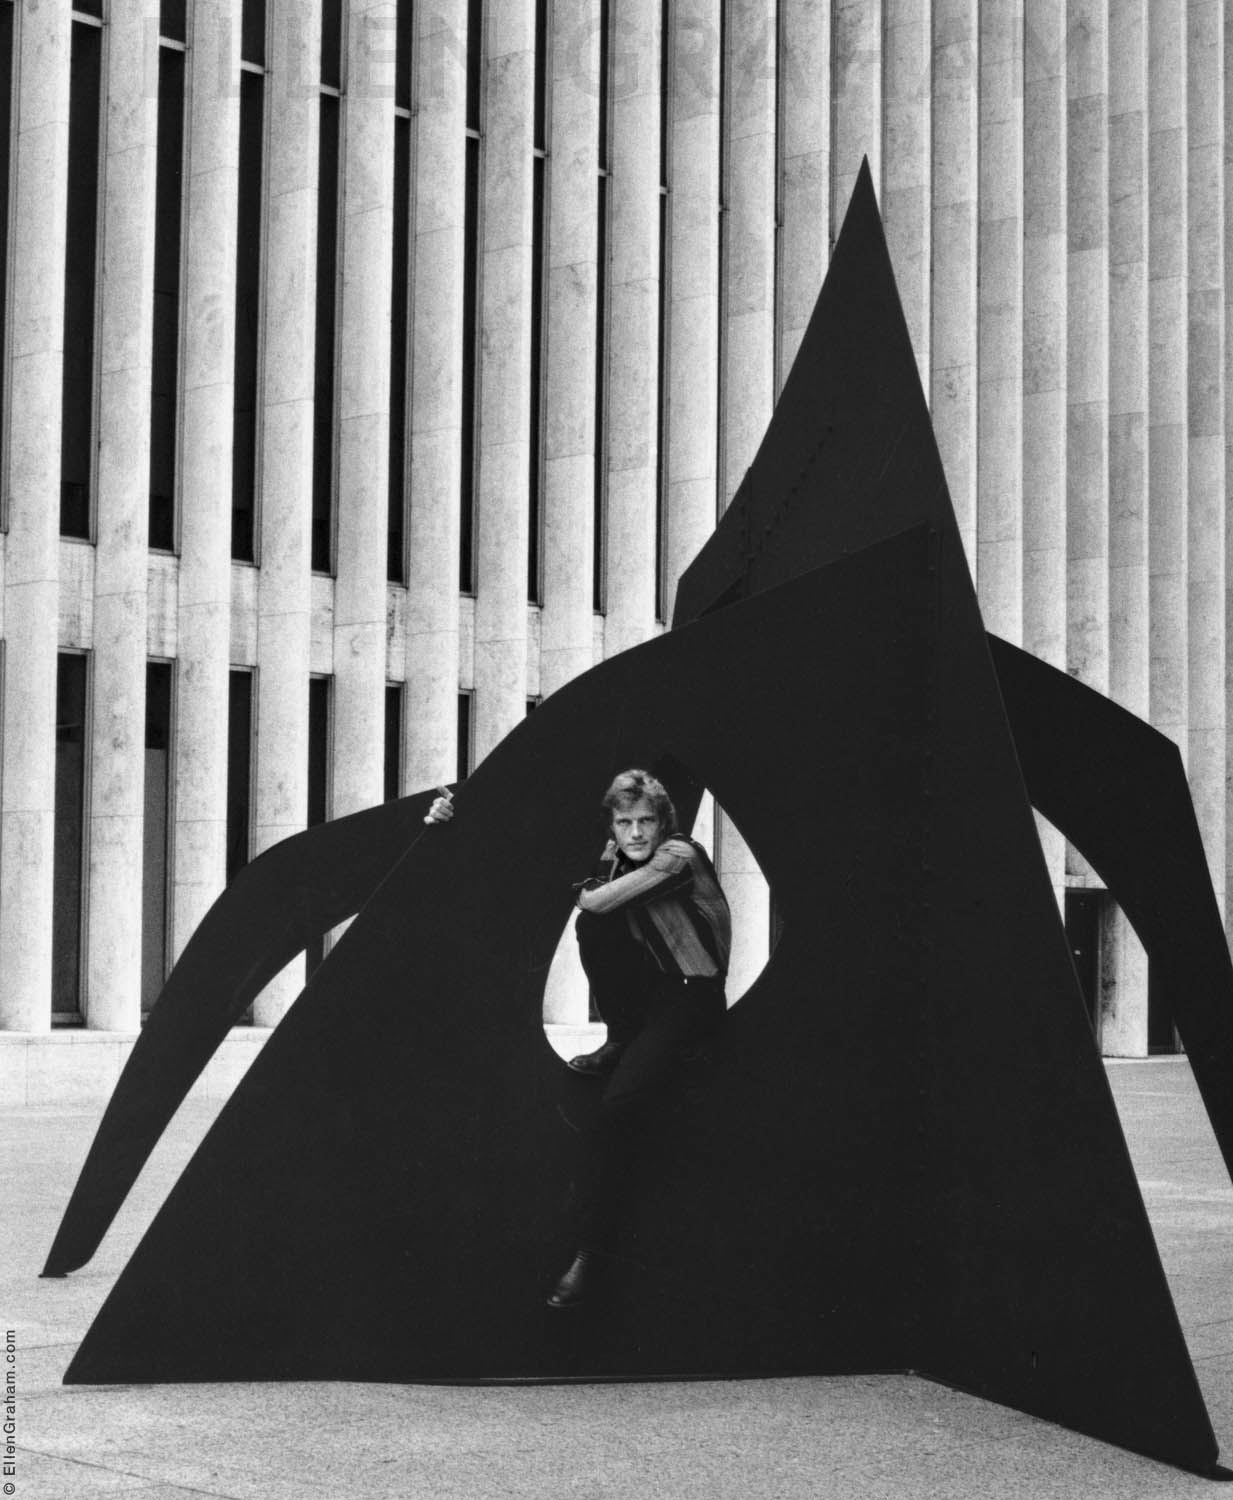 Peter Martins, With Alexander Calder Sculpture, Lincoln Center, New York, NY, 1983